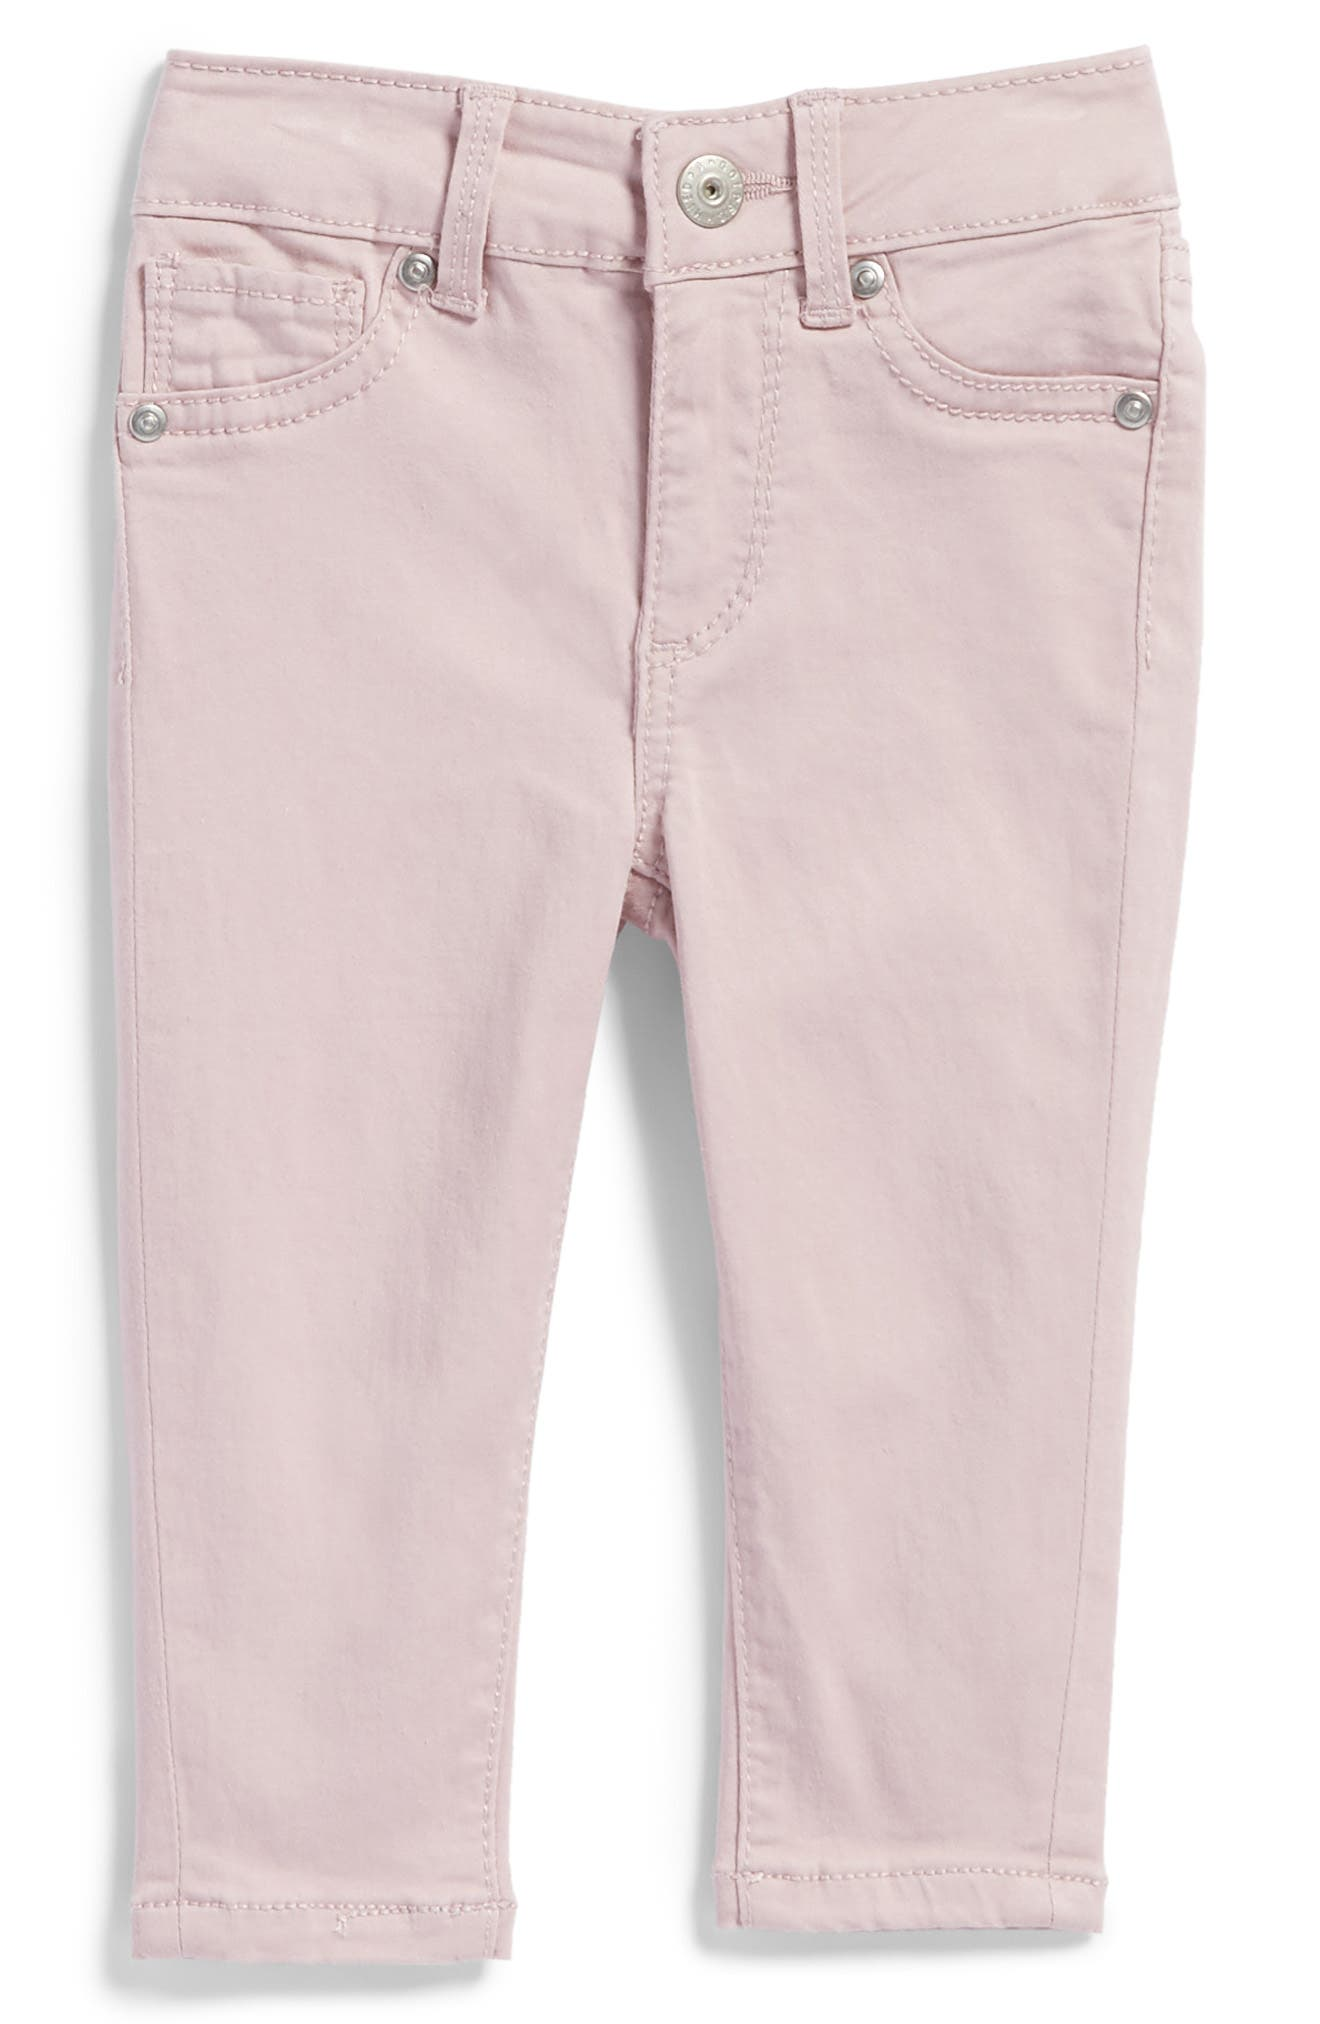 Twiggy Ankle Skinny Jeans,                         Main,                         color,